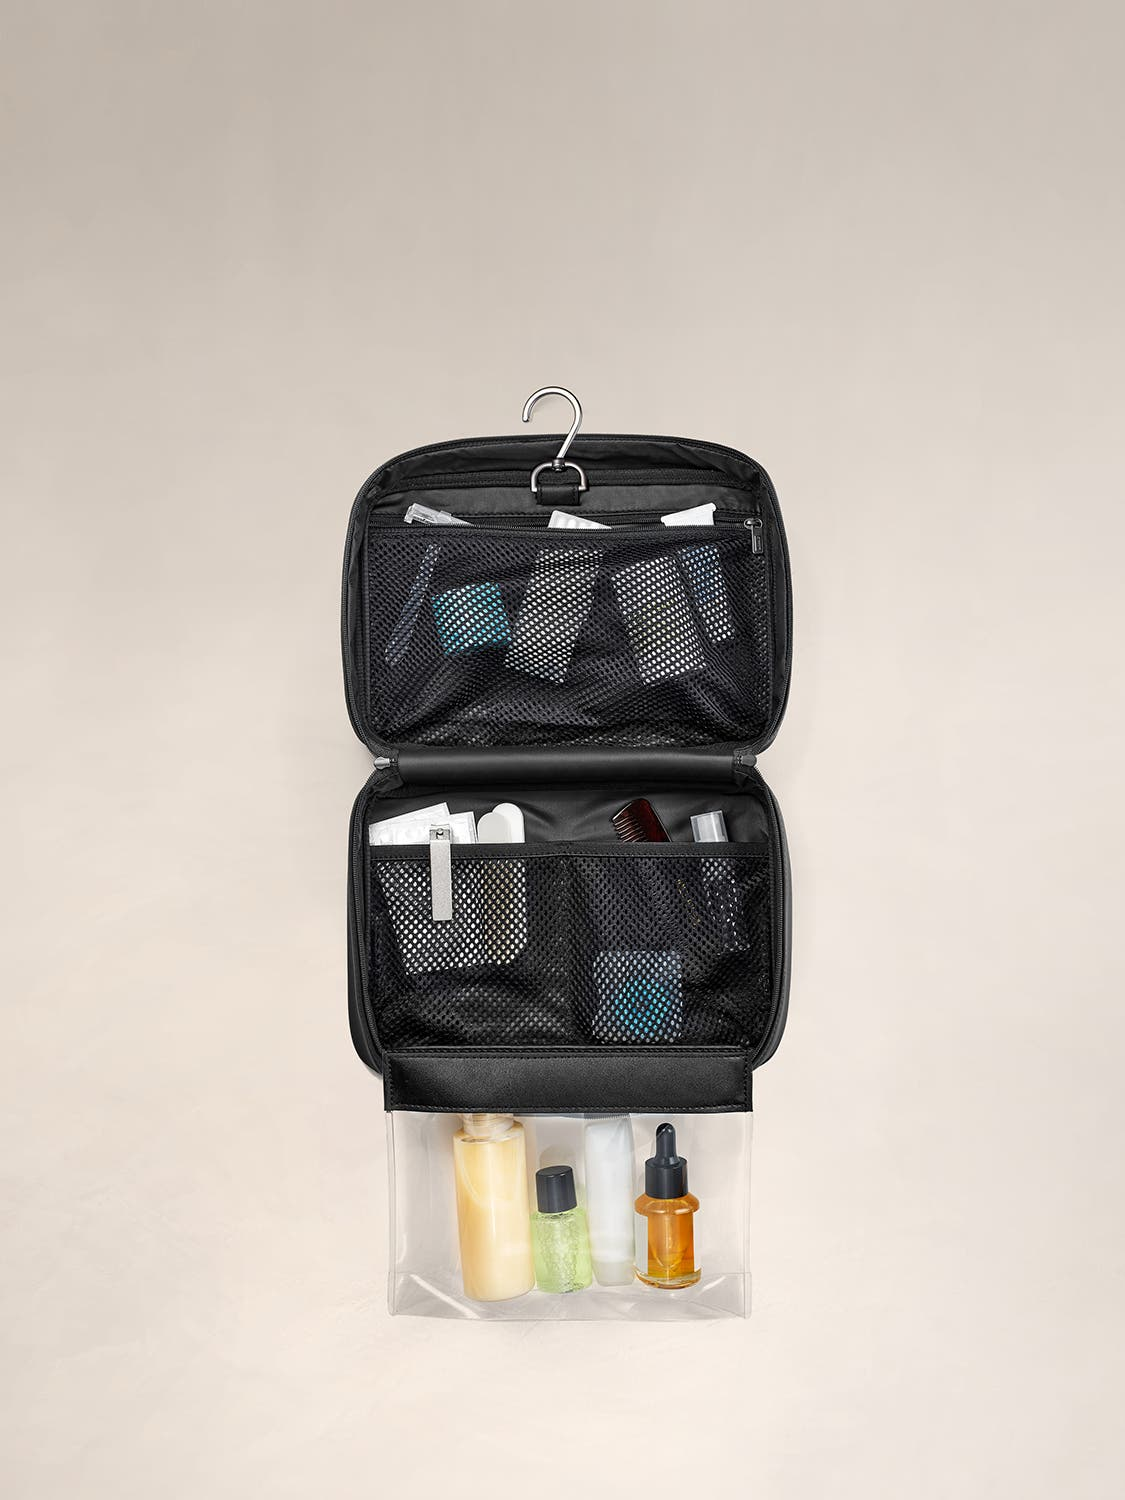 An internal view of a black toiletry bag packed with travel accessories within mesh pockets.